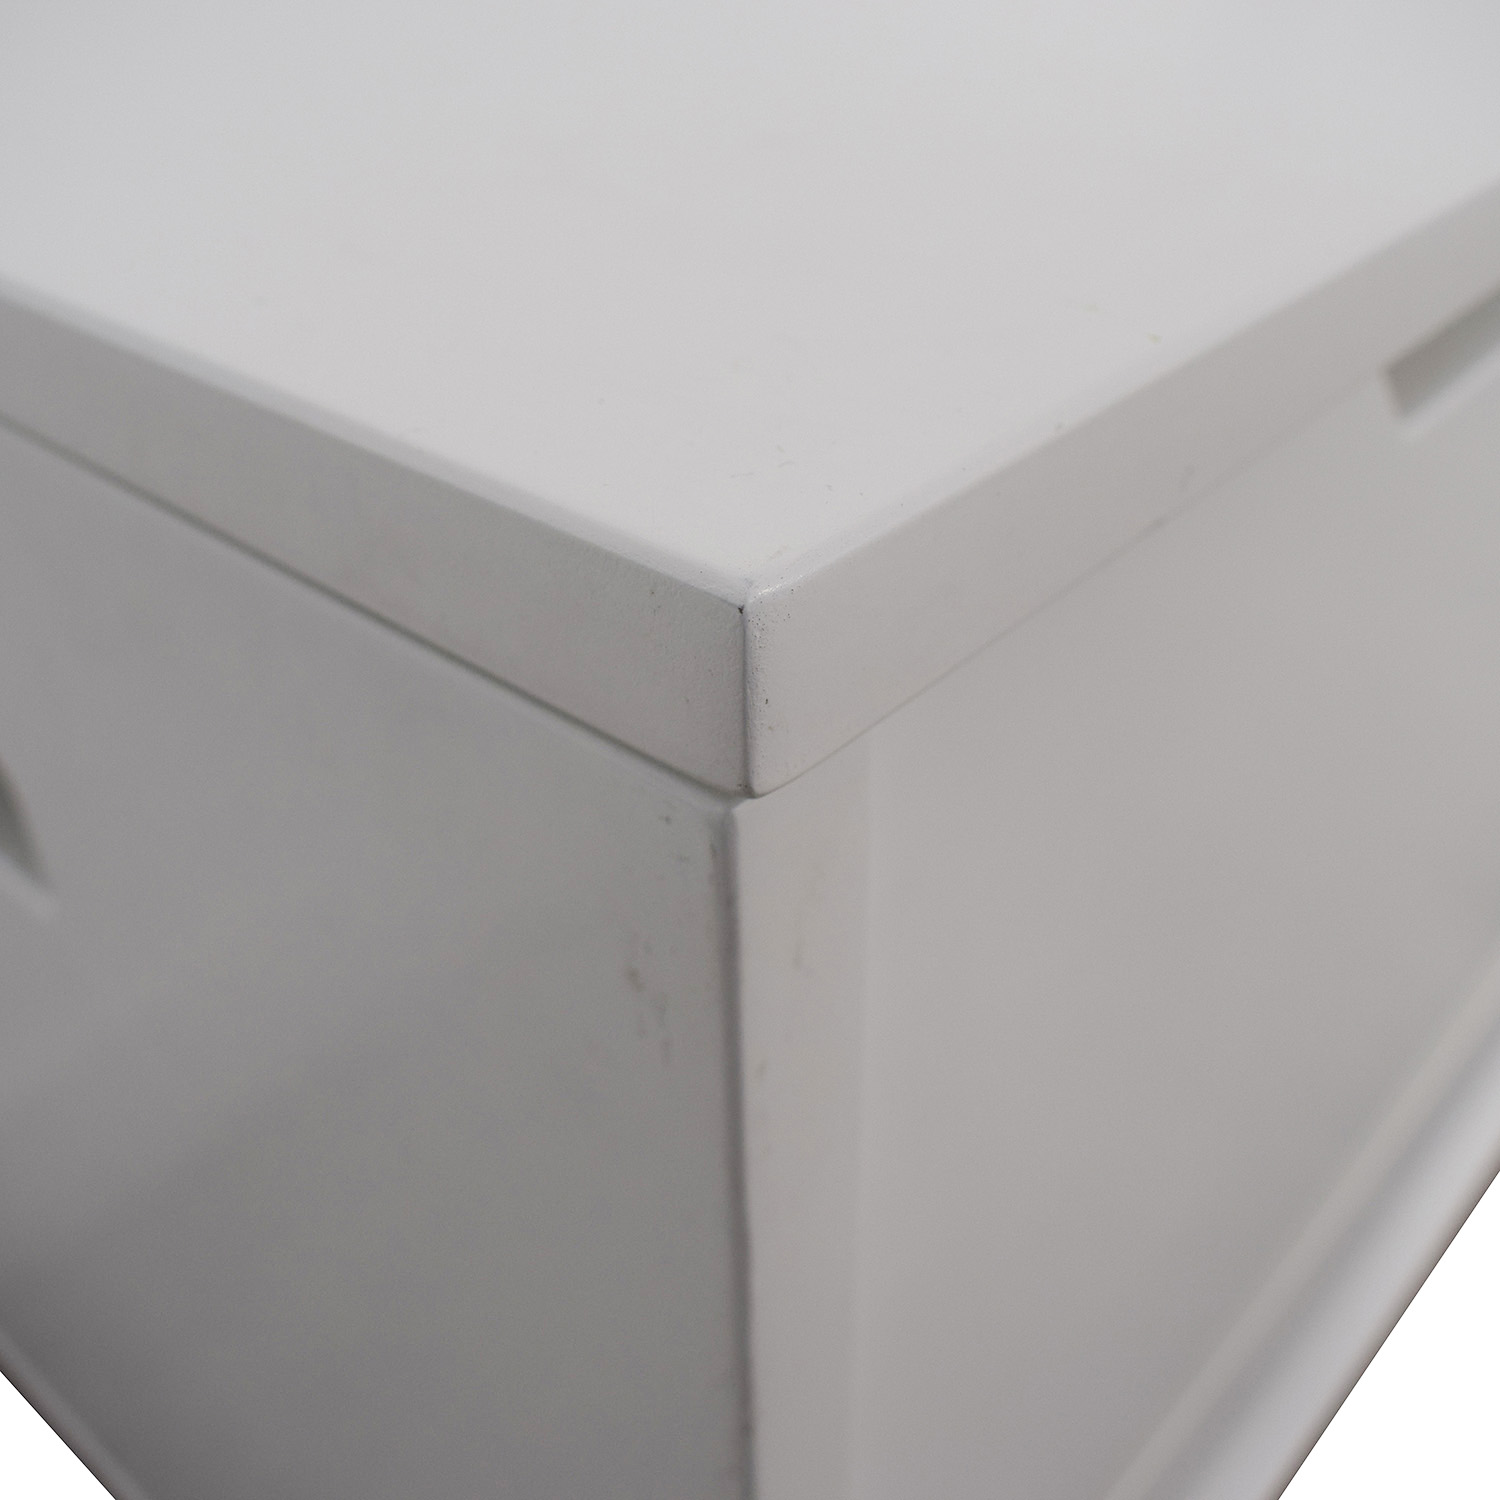 Land of Nod Land of Nod White Two-Drawer Storage Bench on sale